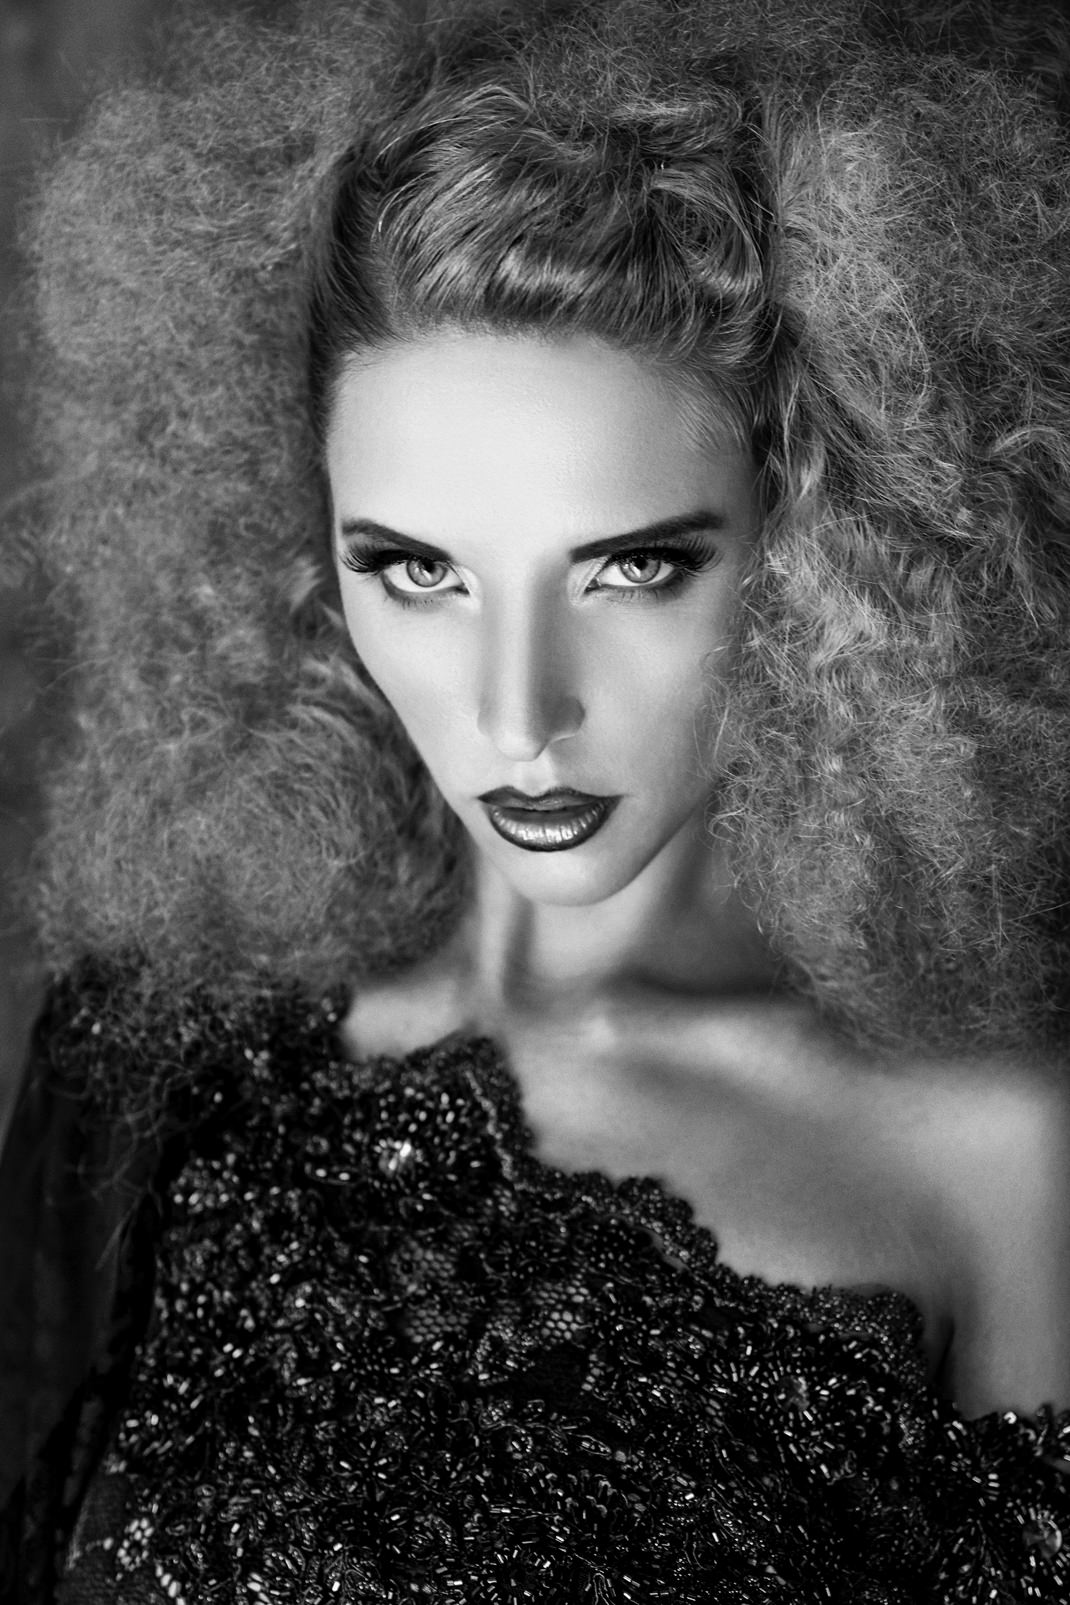 Portrait - Markus Hertzsch - B&W - Girl - Model - Bildlook - Face - Pose - Art - Hair - Eyes - Dress - Fashion - Hairstyle